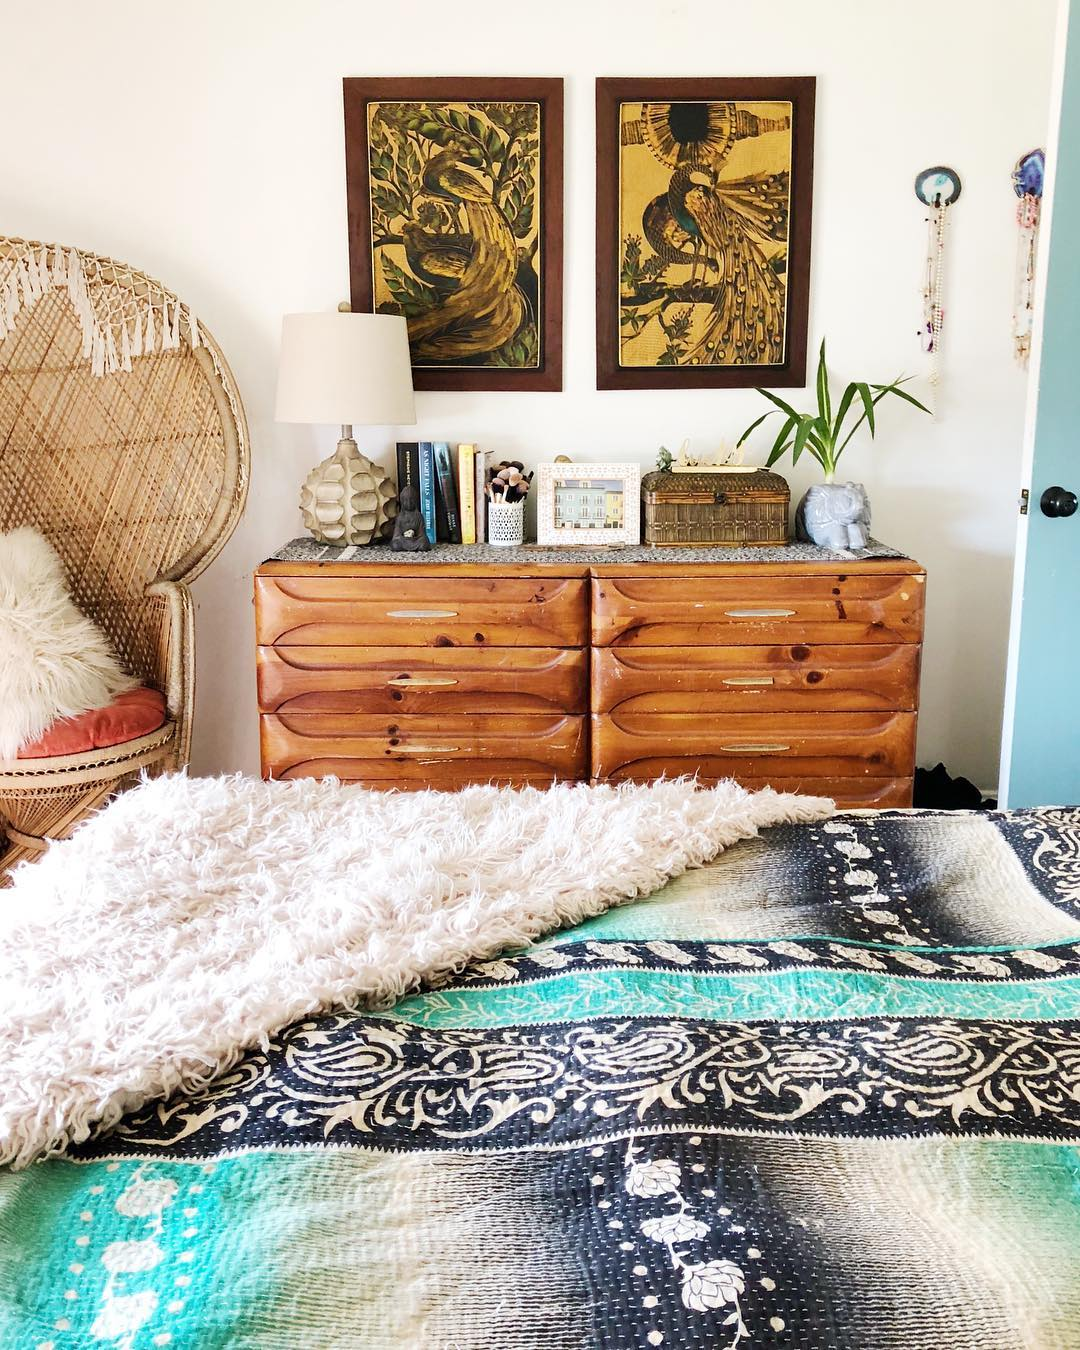 How To Decorate Above Bedroom Dresser With Art And Color